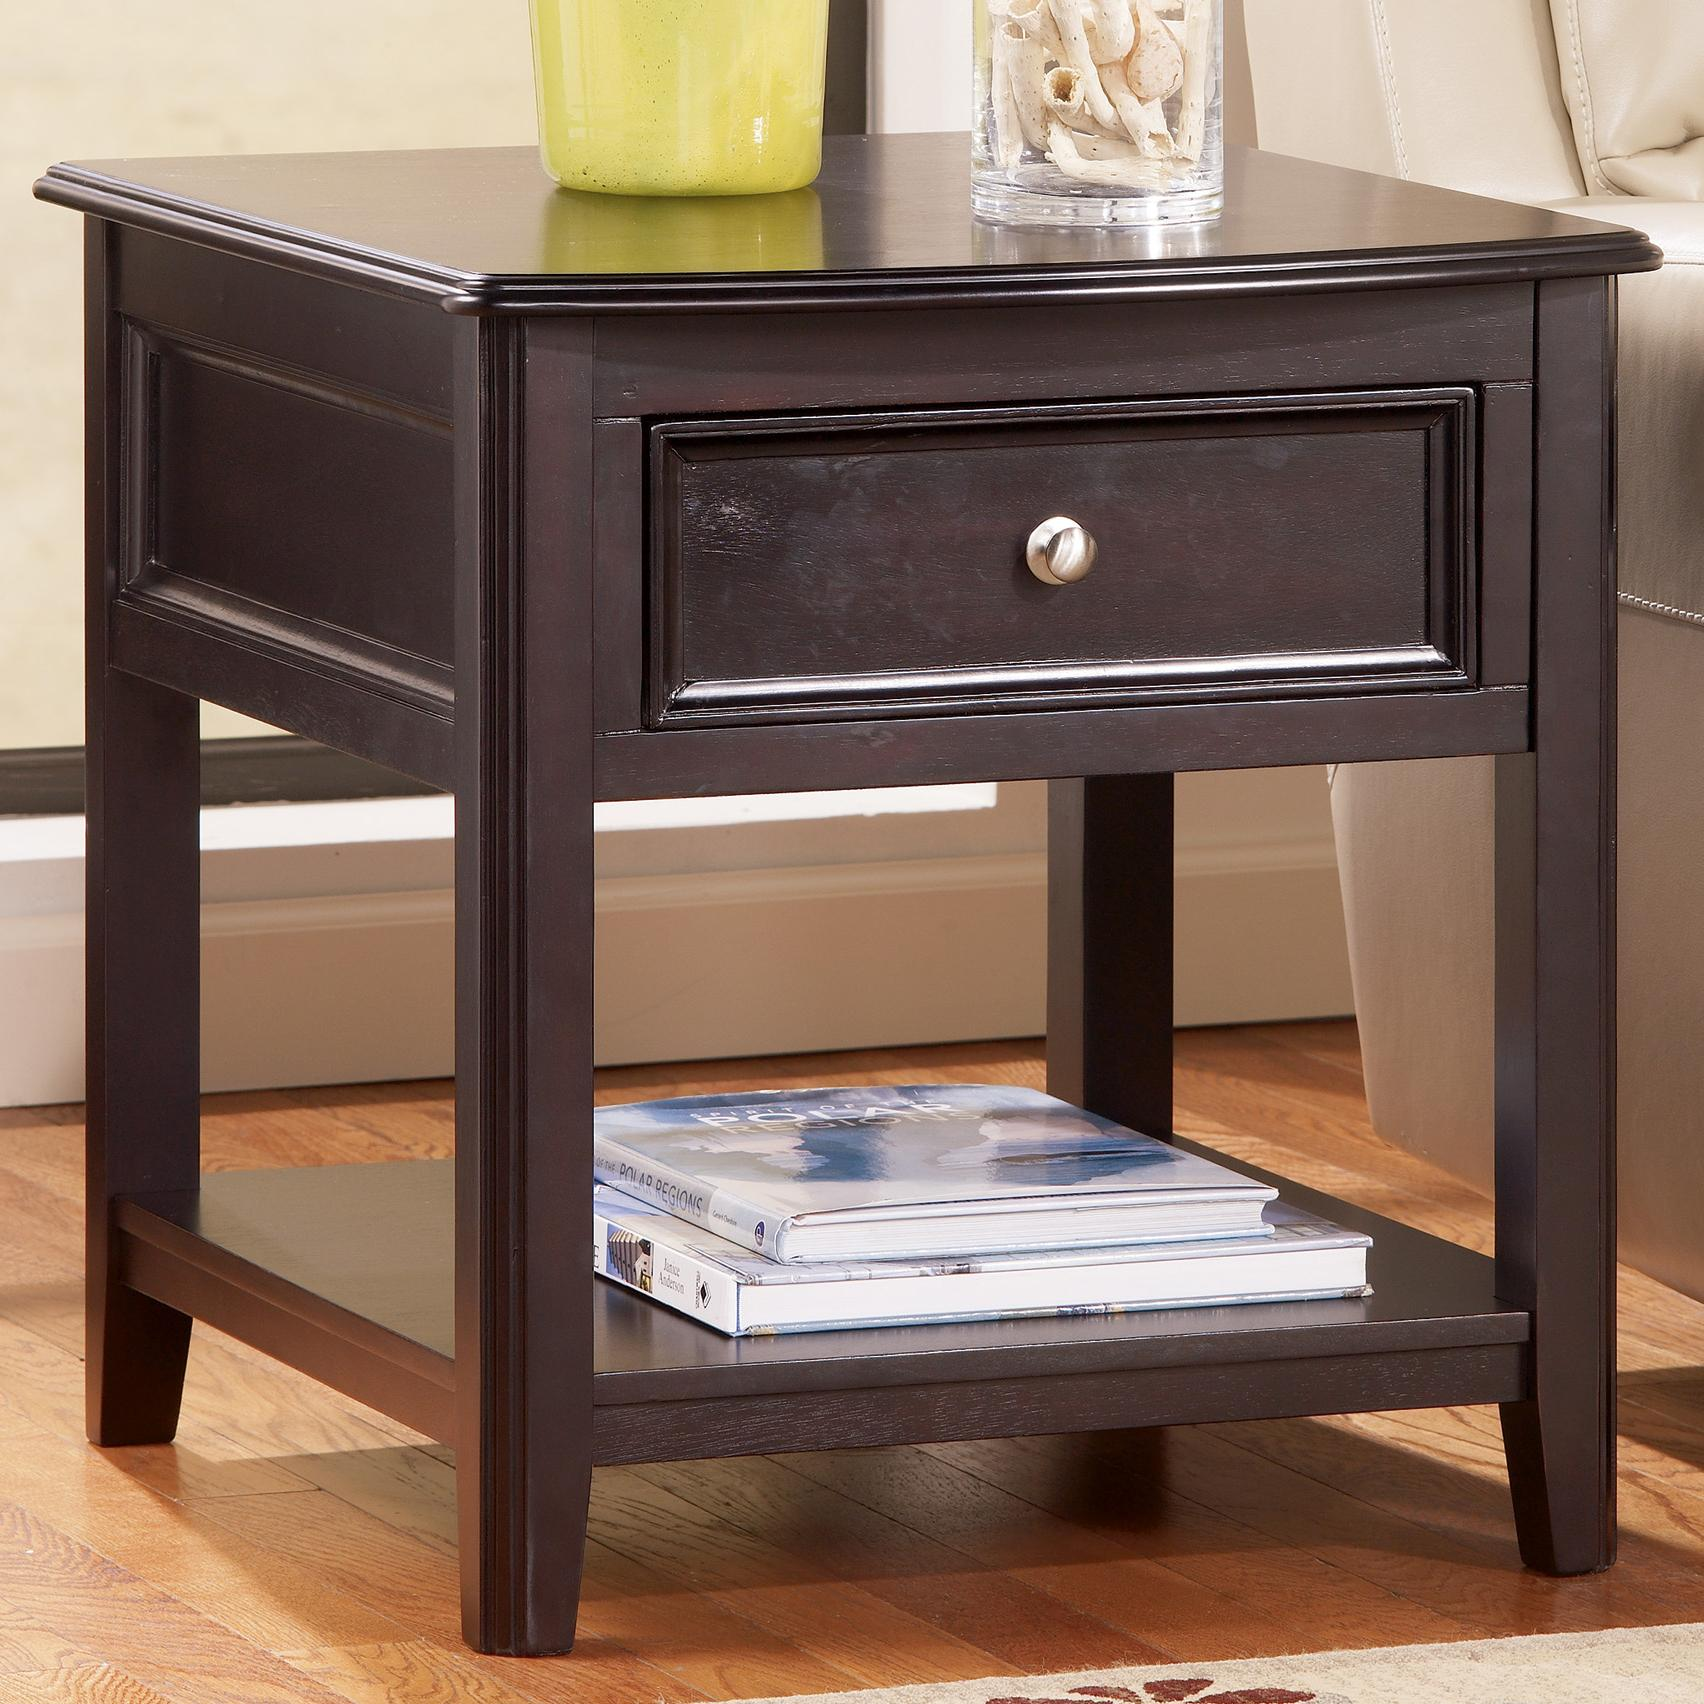 Carlyle End Table by Signature Design by Ashley at HomeWorld Furniture